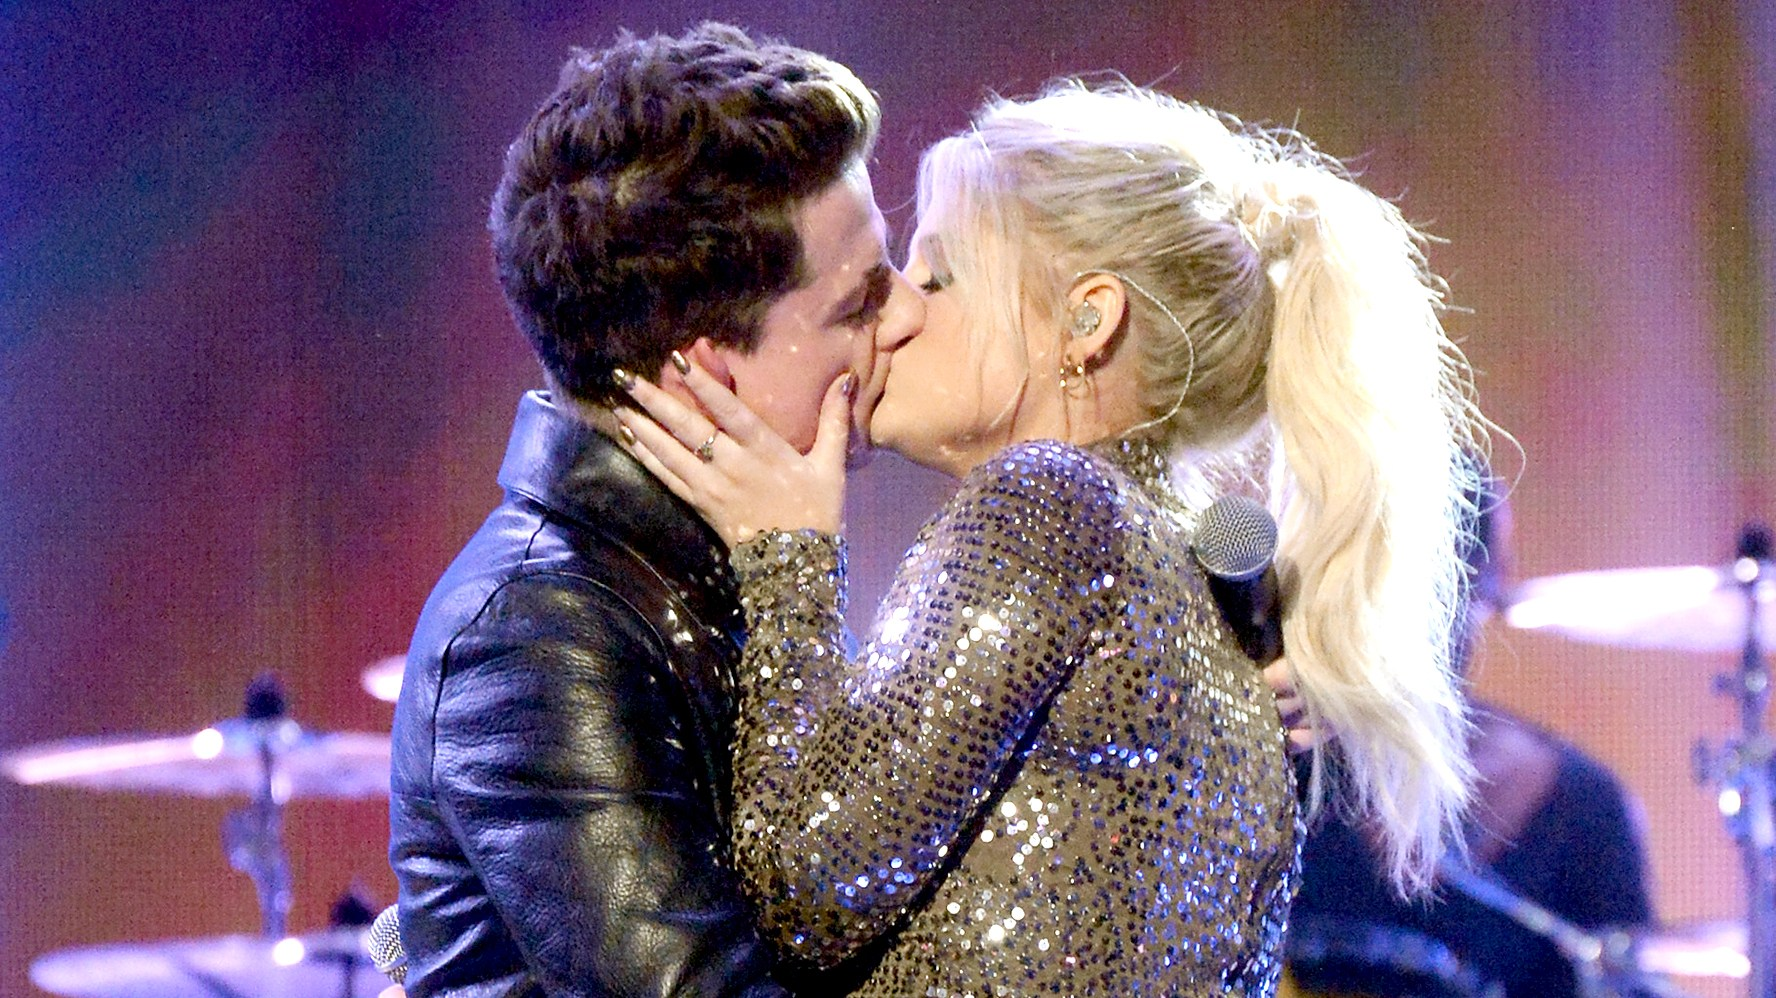 Charlie Puth and Meghan Trainor kiss onstage during the 2015 American Music Awards.